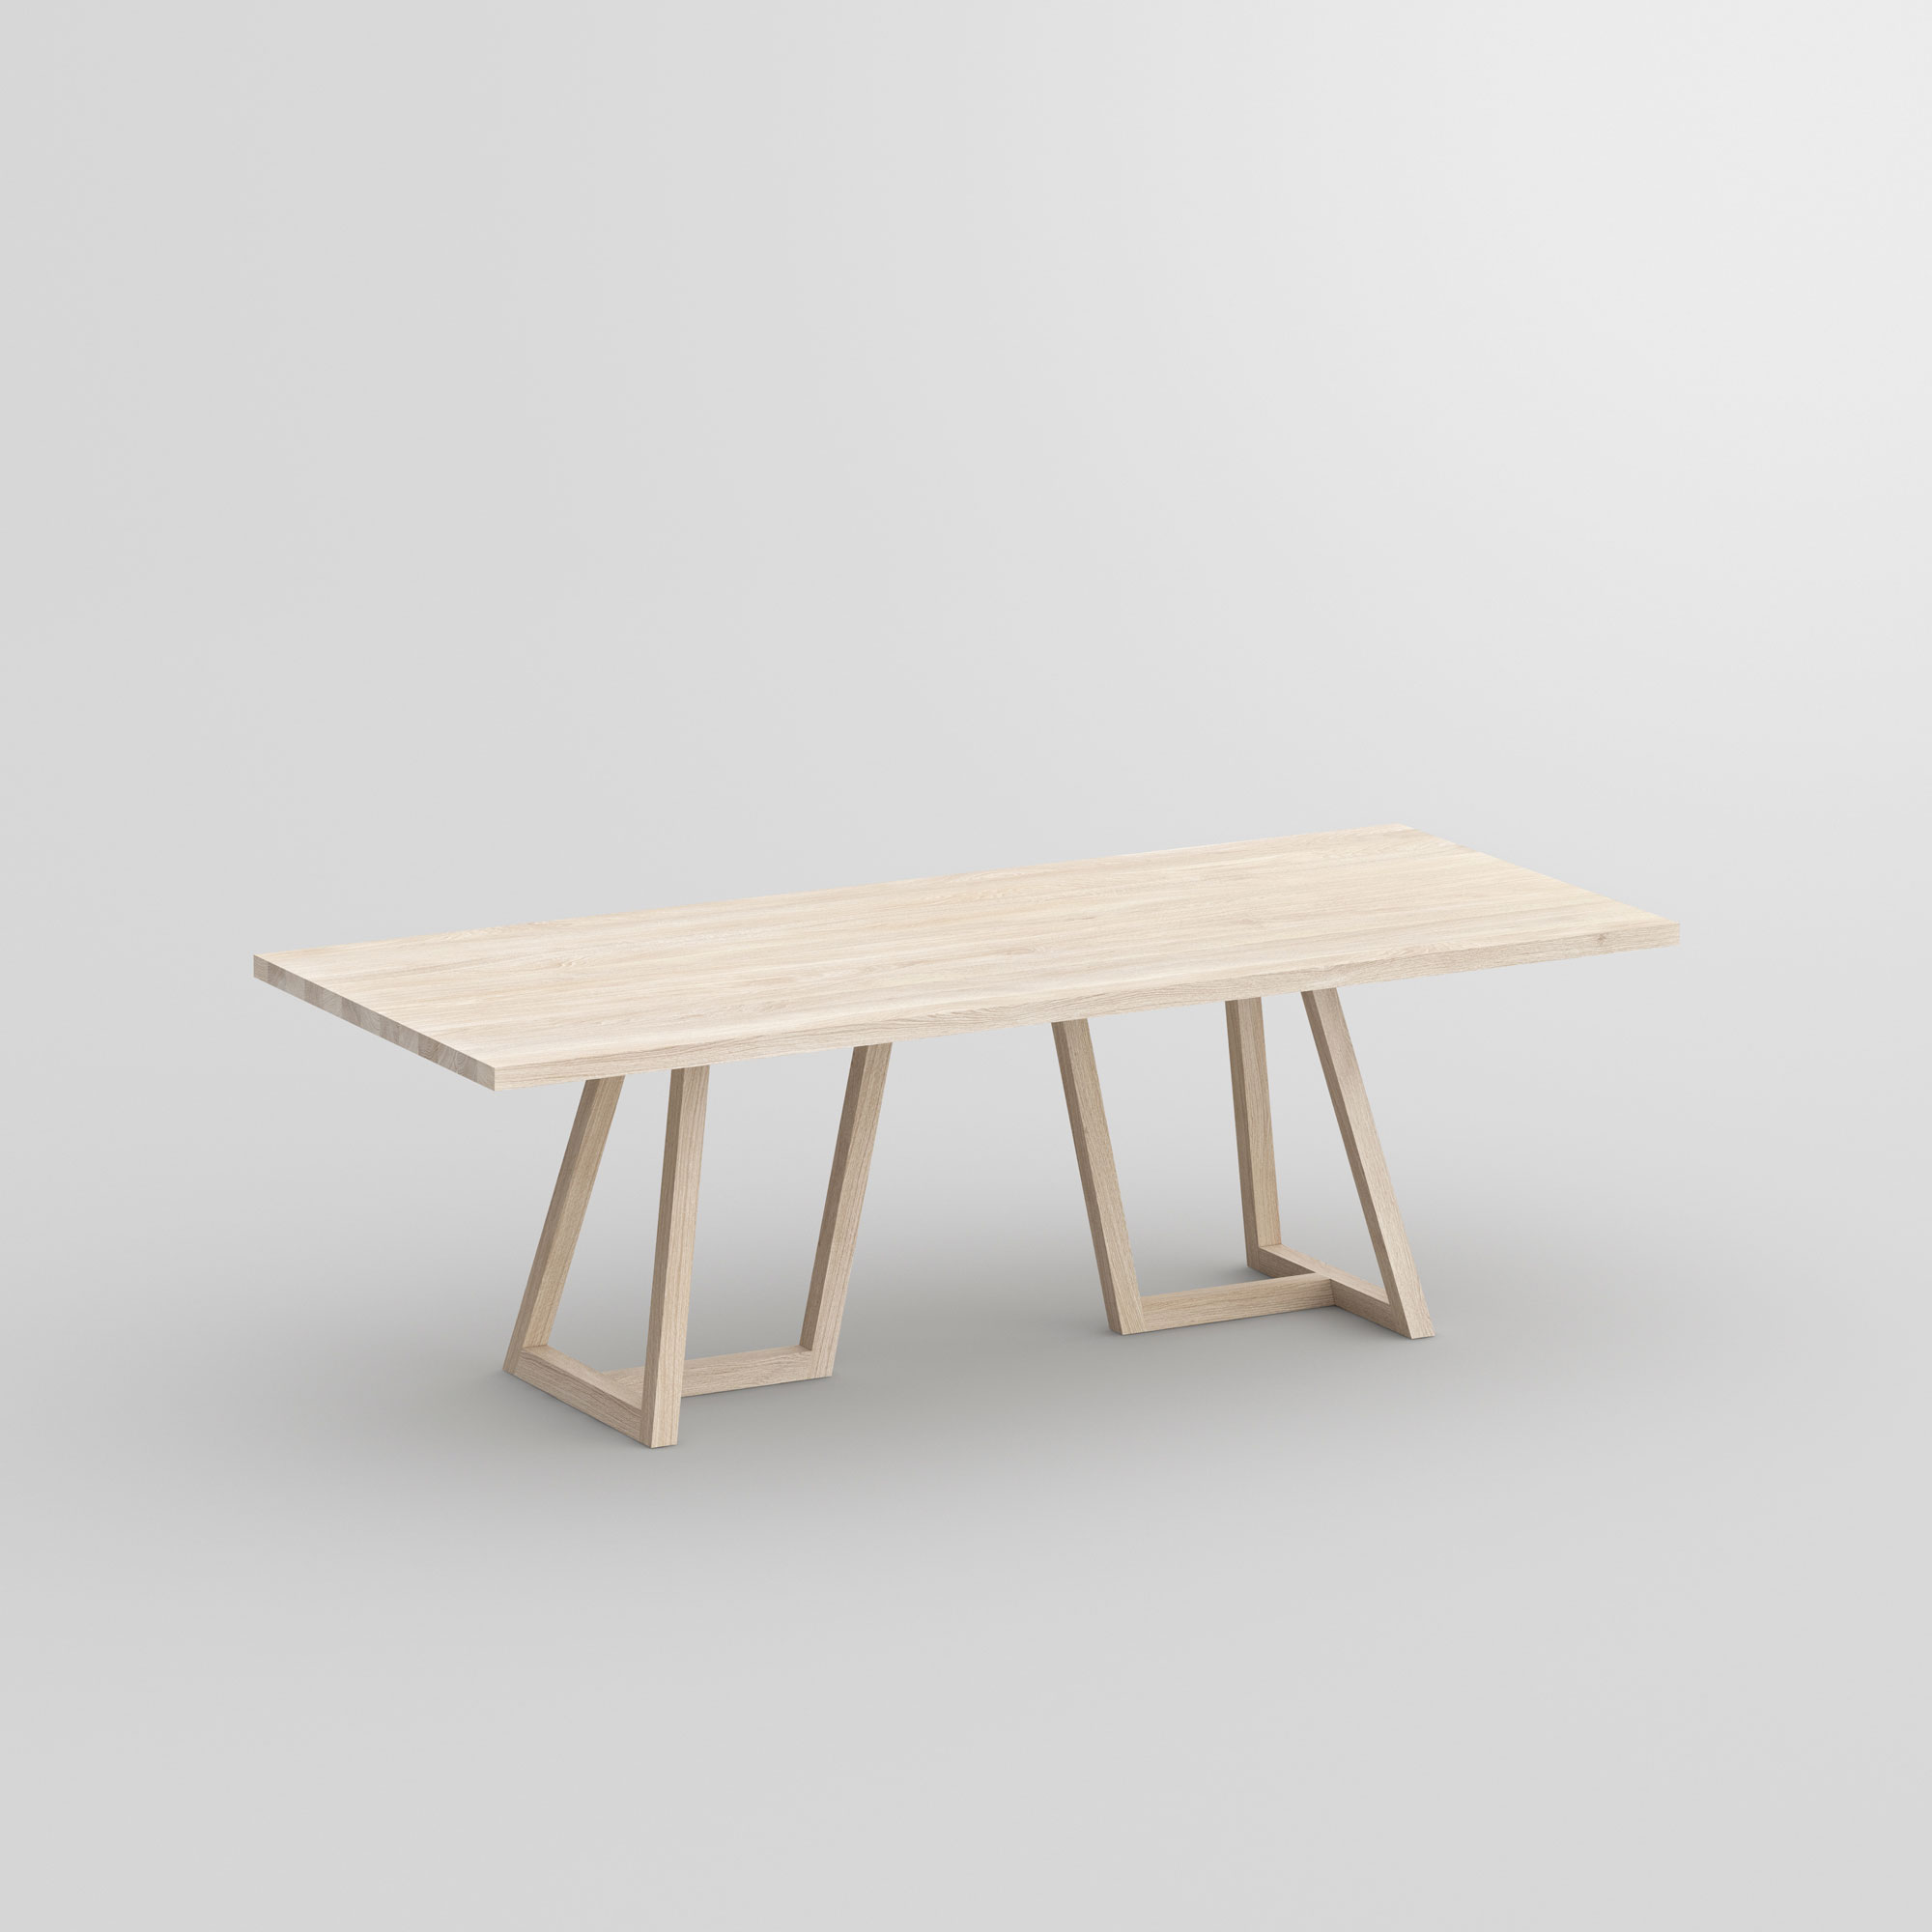 Designer Solid Wood Table MARGO cam1 custom made in solid wood by vitamin design